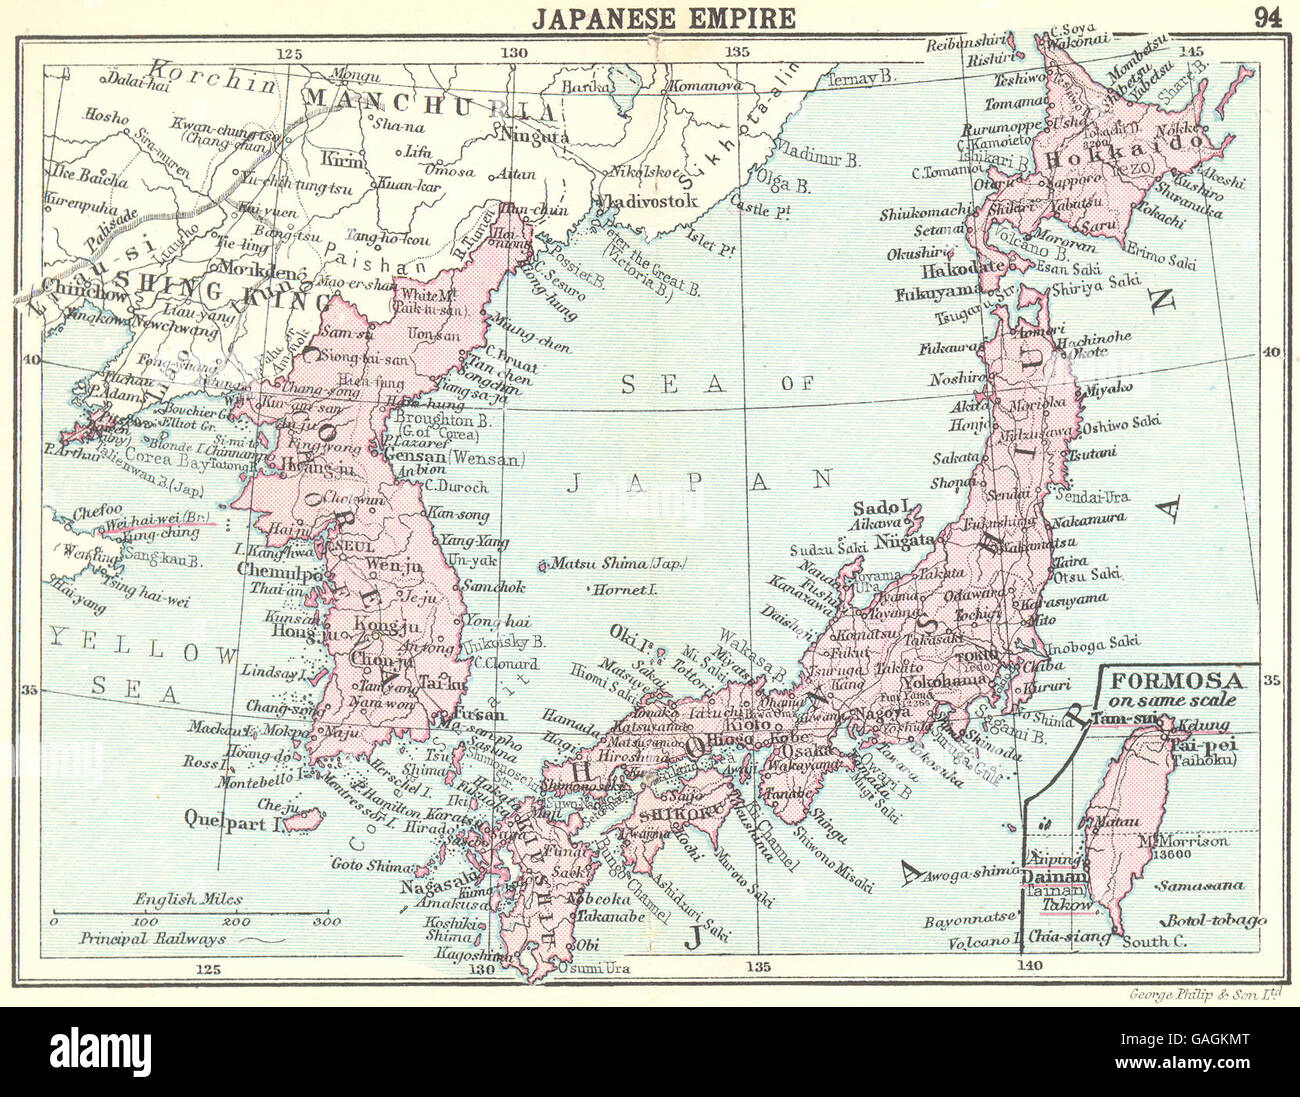 Japan japanese empire inset map of formosa taiwan small map 1912 japan japanese empire inset map of formosa taiwan small map 1912 gumiabroncs Images